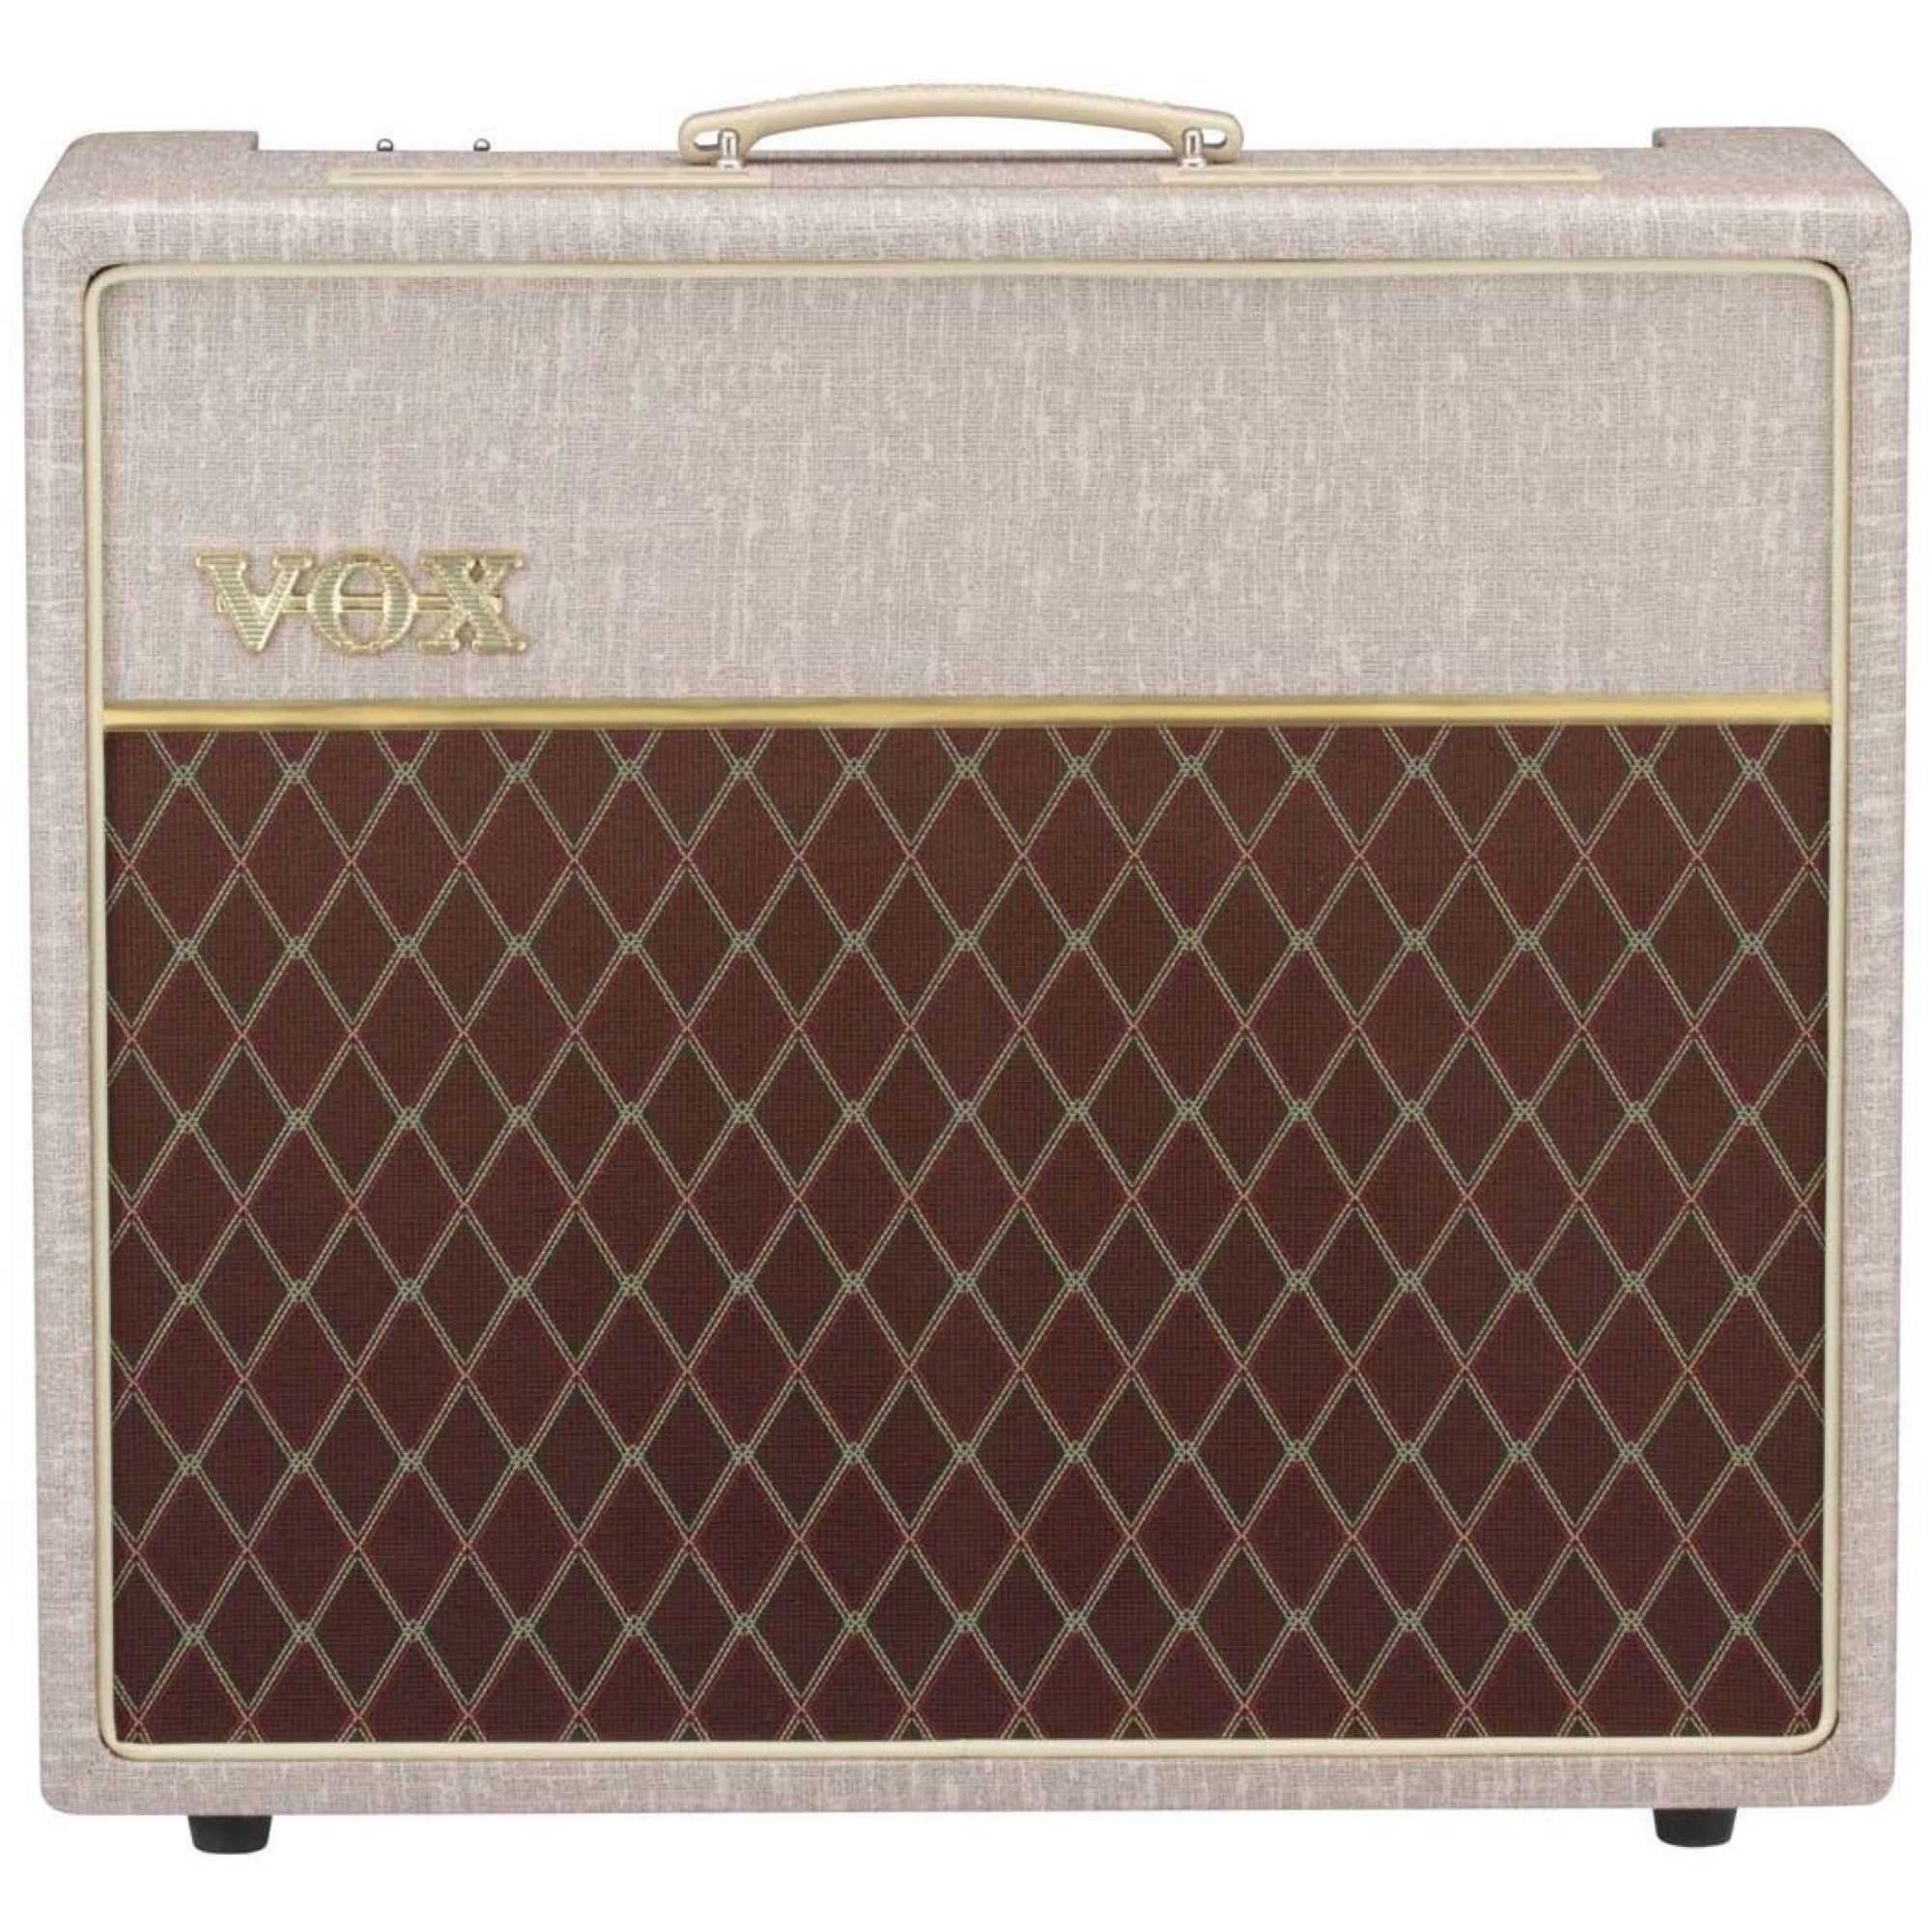 Vox AC15HW1X Hand-Wired Guitar Combo Amplifier (15 Watts, 1x12 Inch)